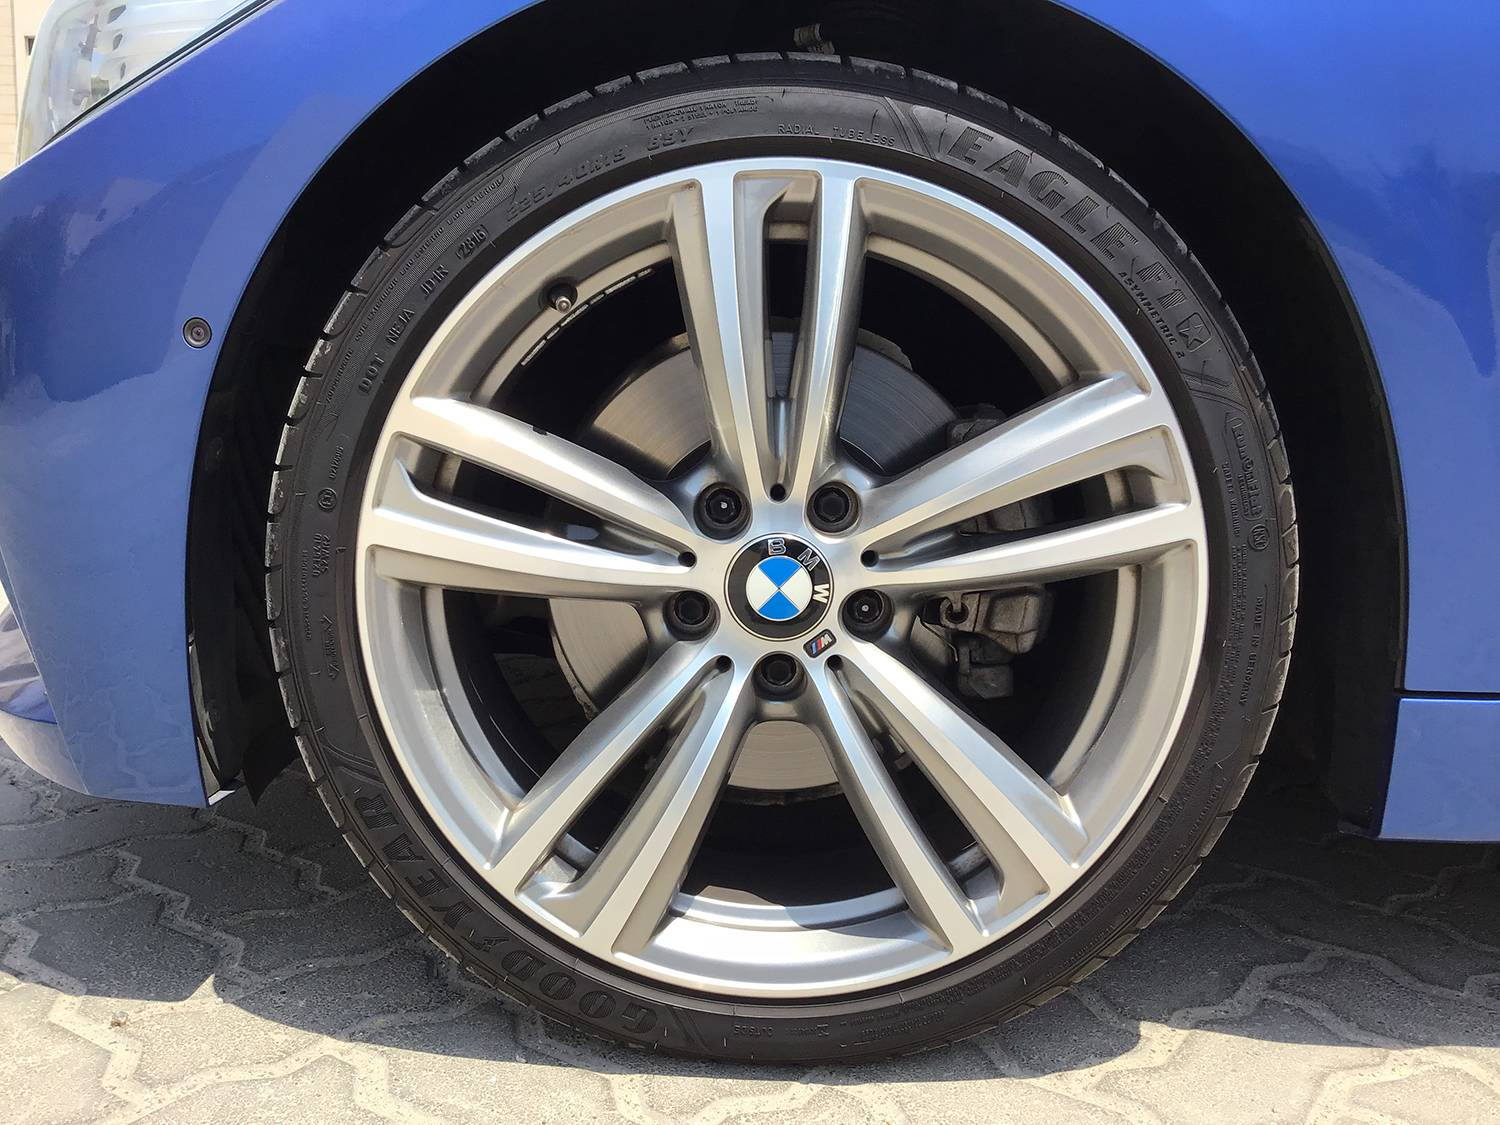 2015 BMW 428 M Kit - reuse - Buy Sell Used Products in